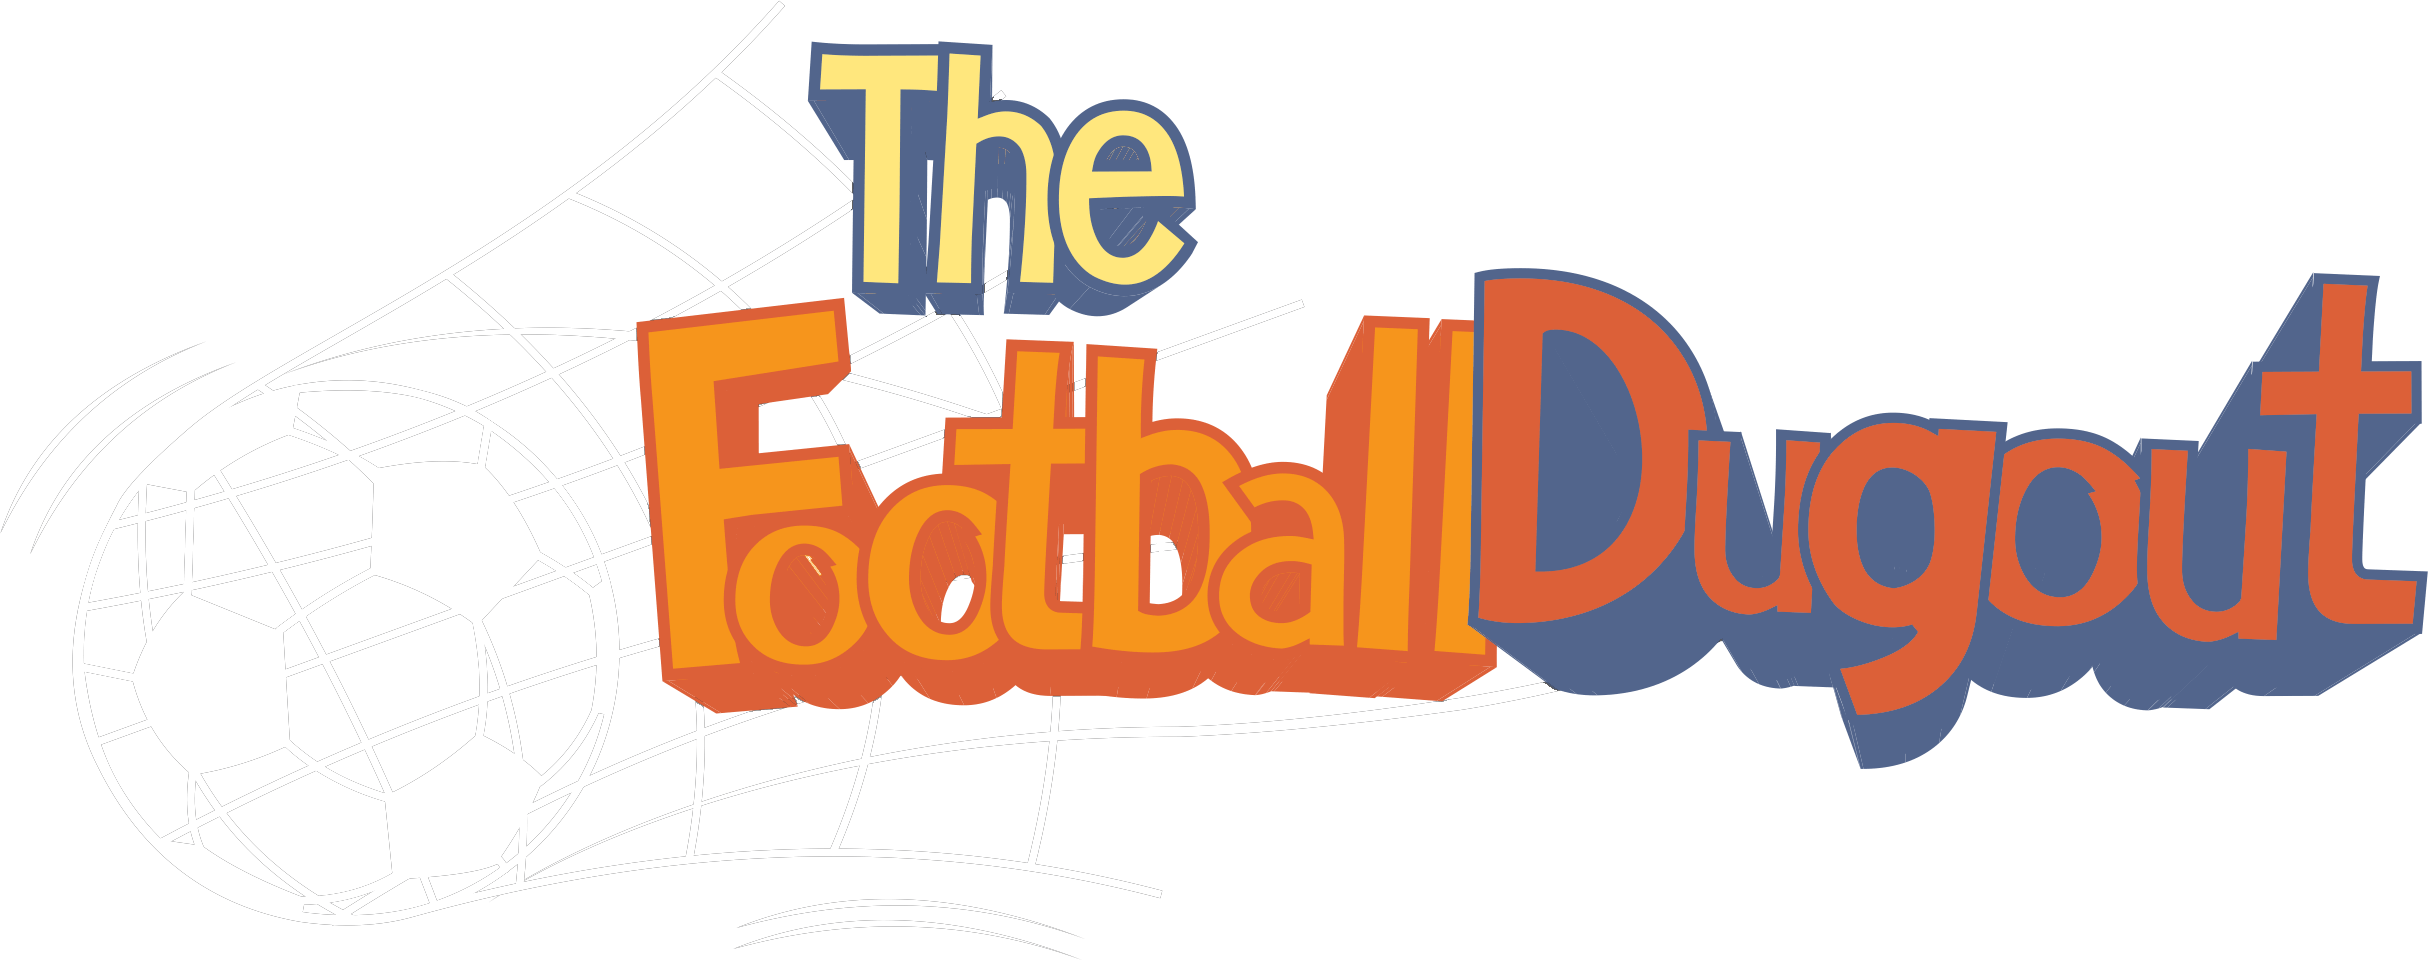 Tickets | Product categories | THEFOOTBALLDUGOUT